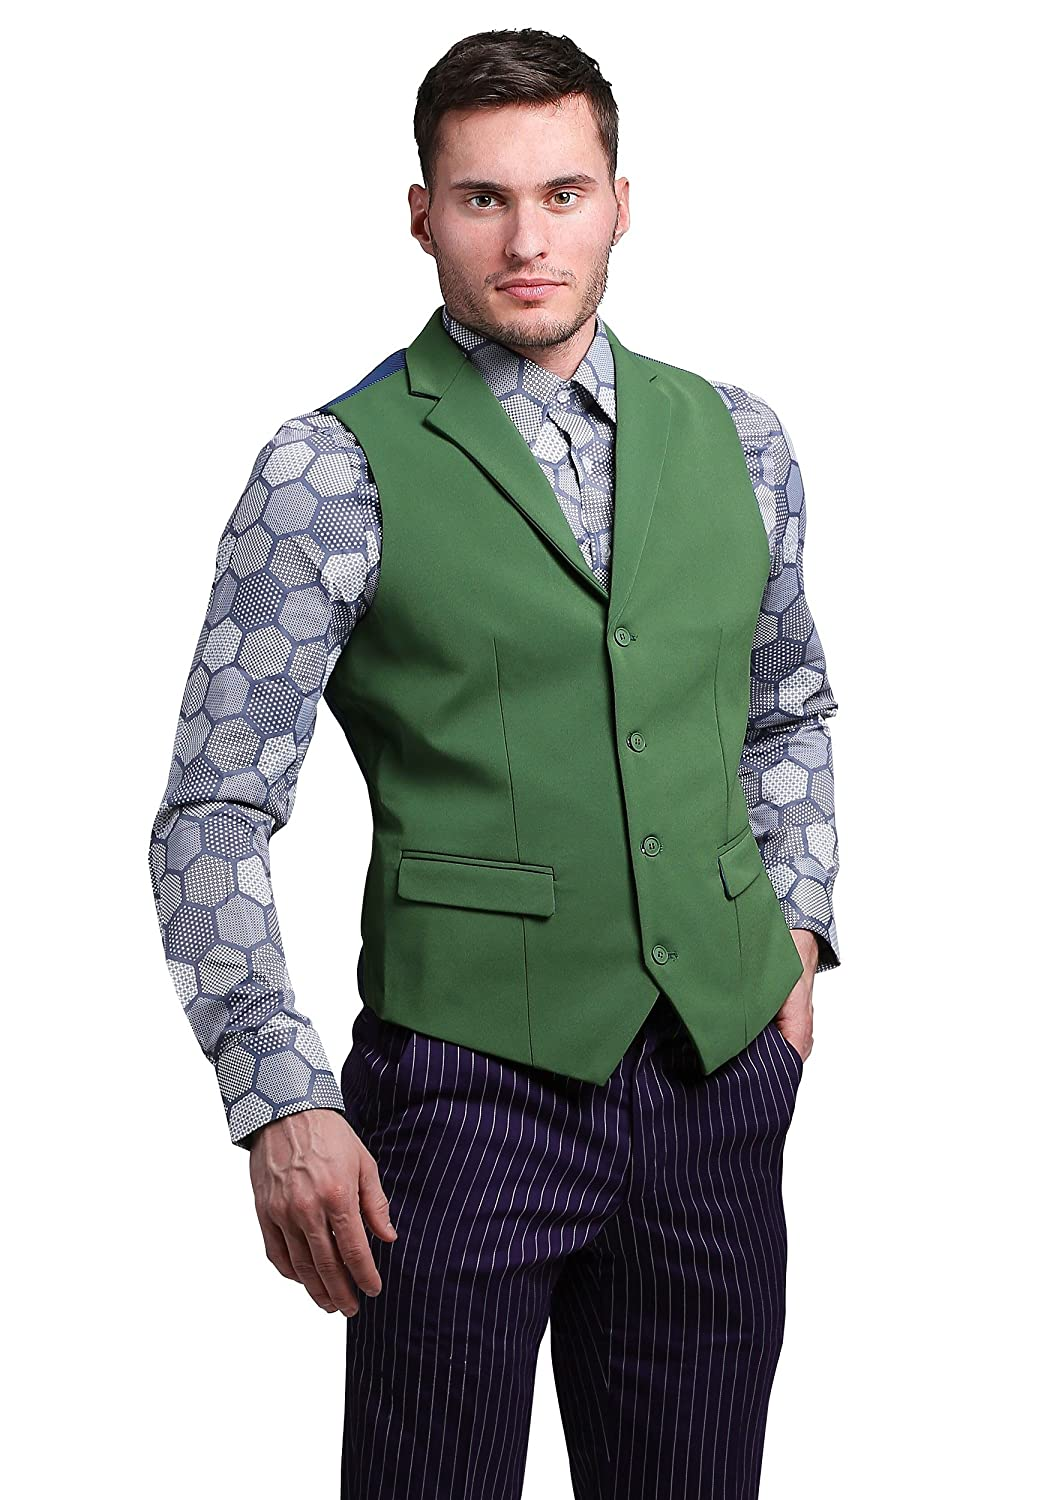 FUNSUITS mens THE JOKER Suit Vest (Authentic) Medium